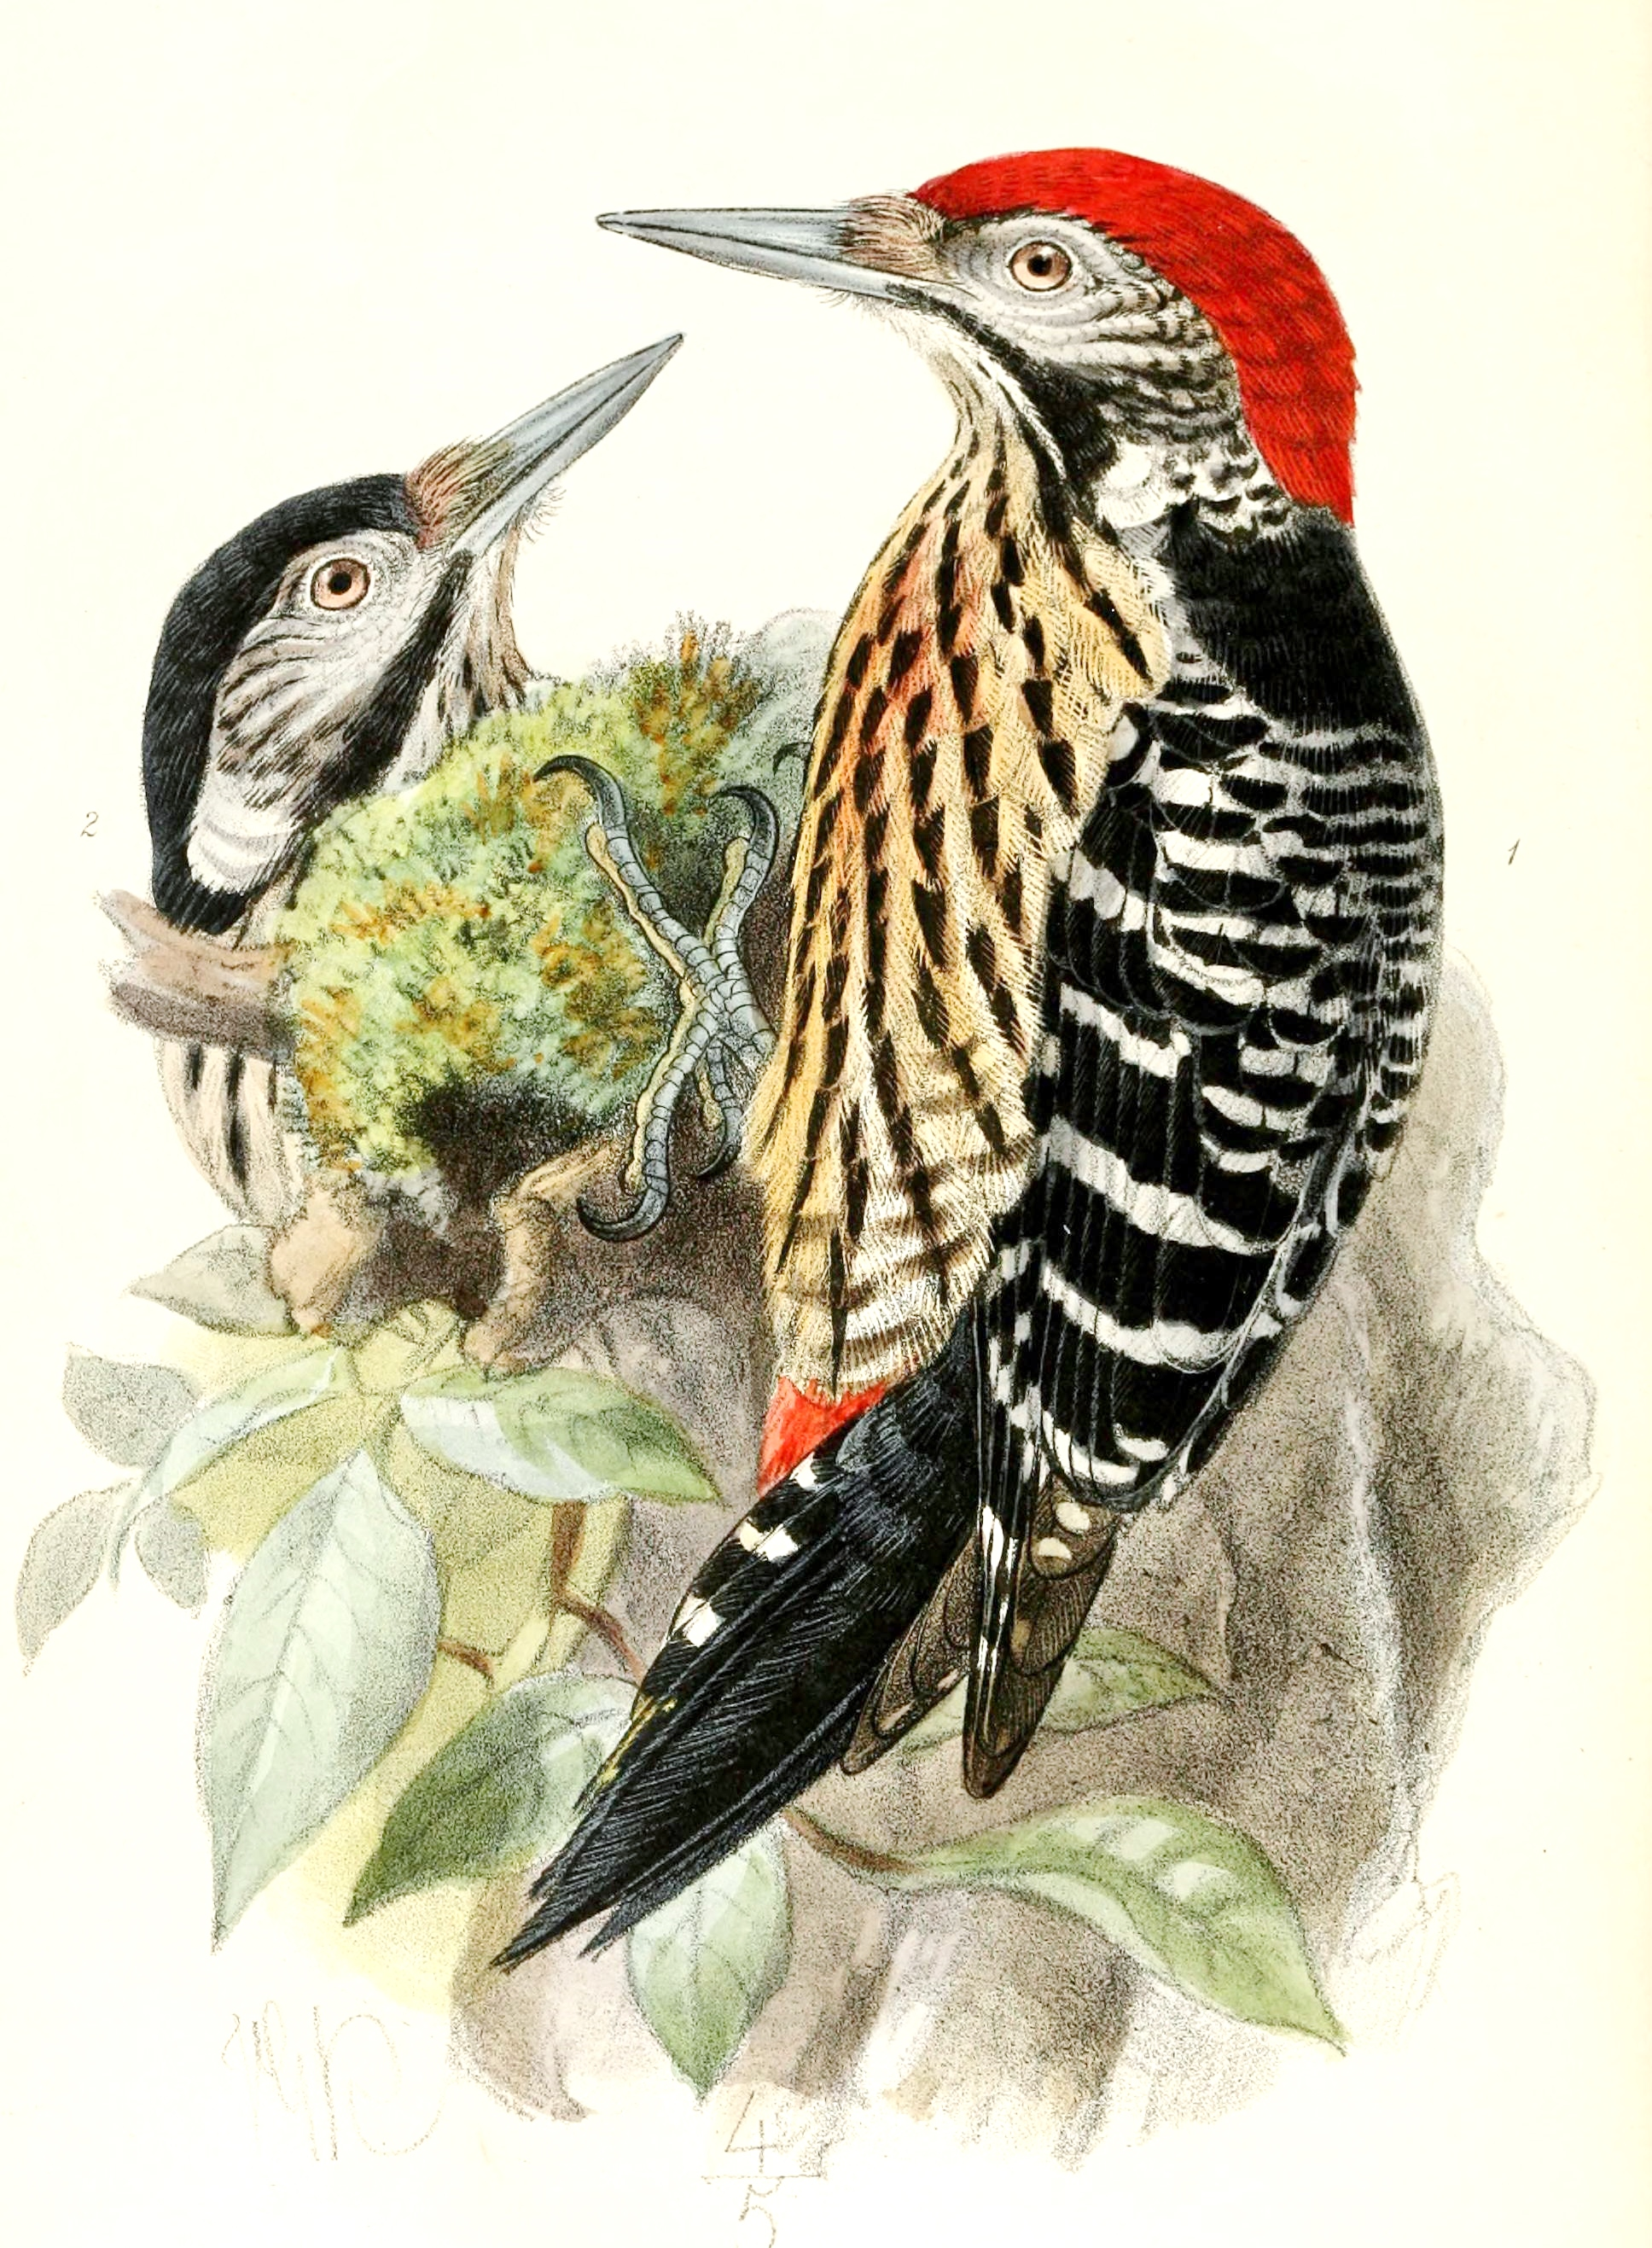 Dendrocopos atratus (Stripe-breasted Woodpecker) by John Gerrard Keulemans [Public domain] https://commons.wikimedia.org/wiki/File:Dendrocopos_atratus_1876.jpg#/media/File:Dendrocopos_atratus_1876.jpg